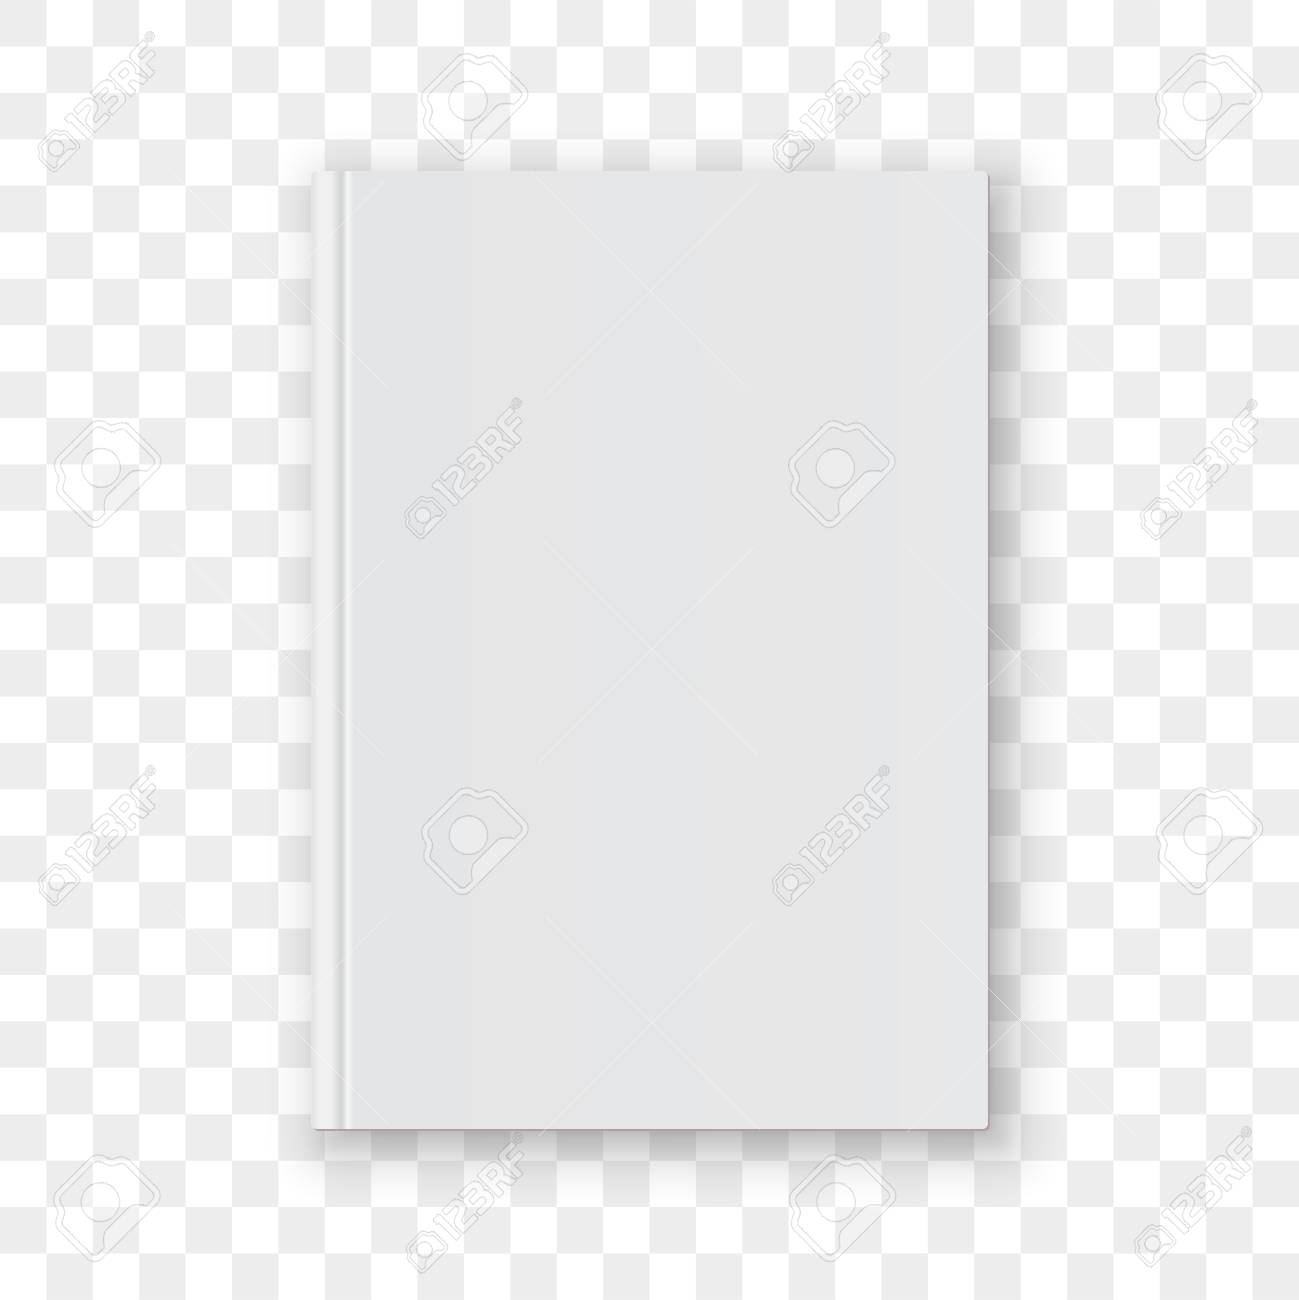 Book cover blank white vertical design template. Empty vector book cover model mock up isolated on transparent background. - 99163990